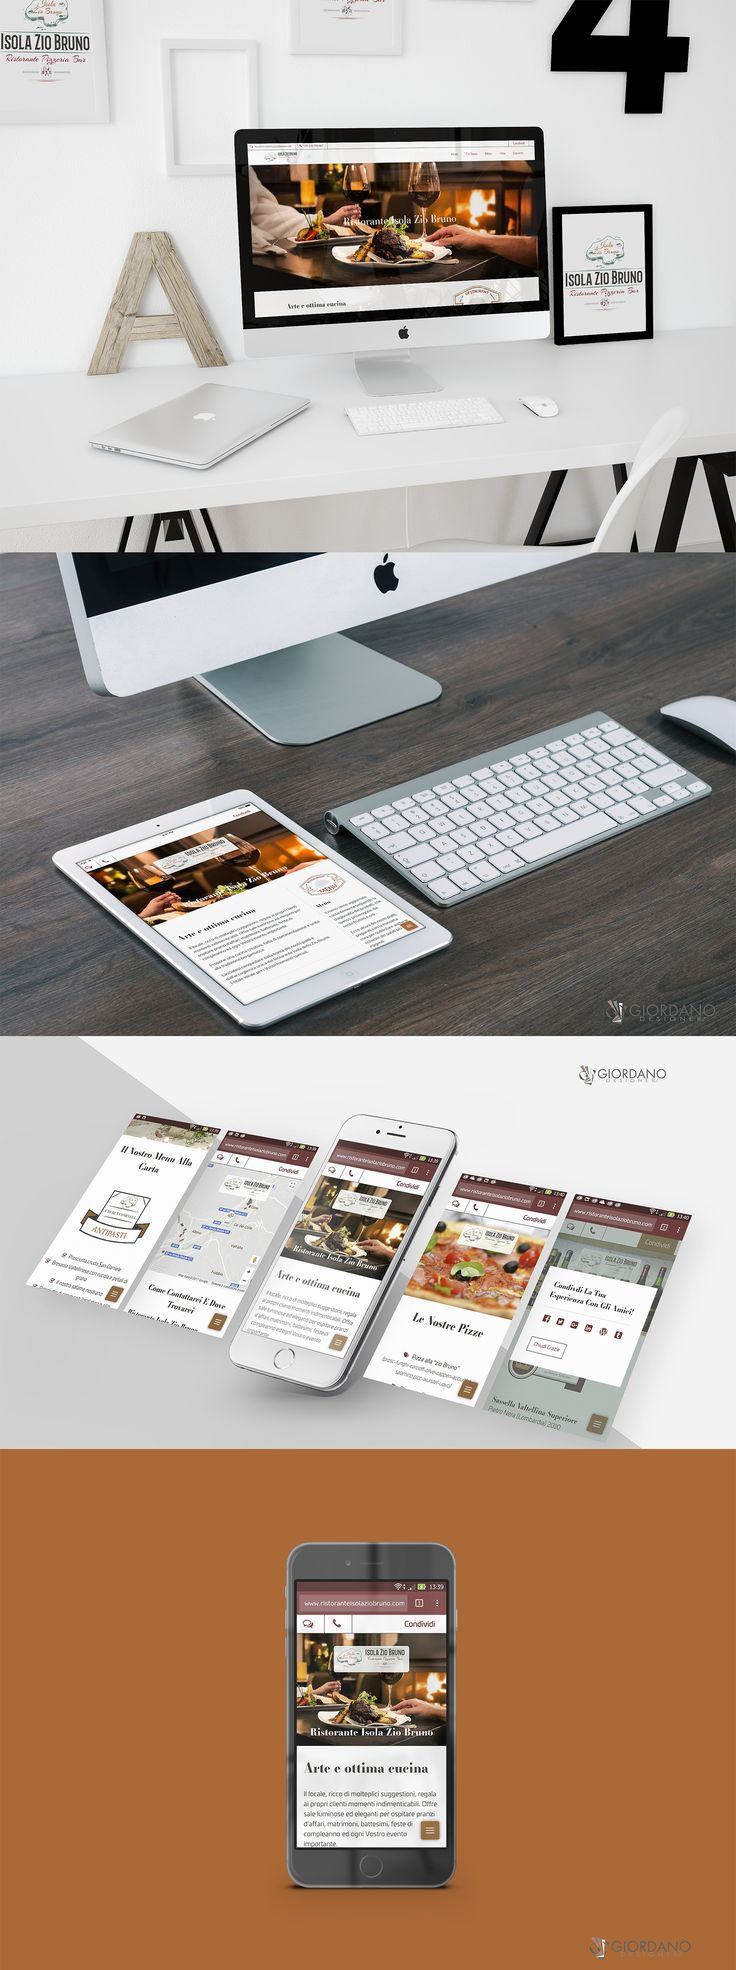 Ready new website for Isola Zio Bruno Restaurant - Bergamo IT ... Full responsive, accessible from all devices such as smartphones and tablets.  #WebDesign #WebTypography #MobileFriendly #UserExperience #WebDeveloper #ResponsiveDesign #SiteOfTheDay #Restaurant #foodporn #foodblogger #foodphoto #Dinner #VisitBergamo